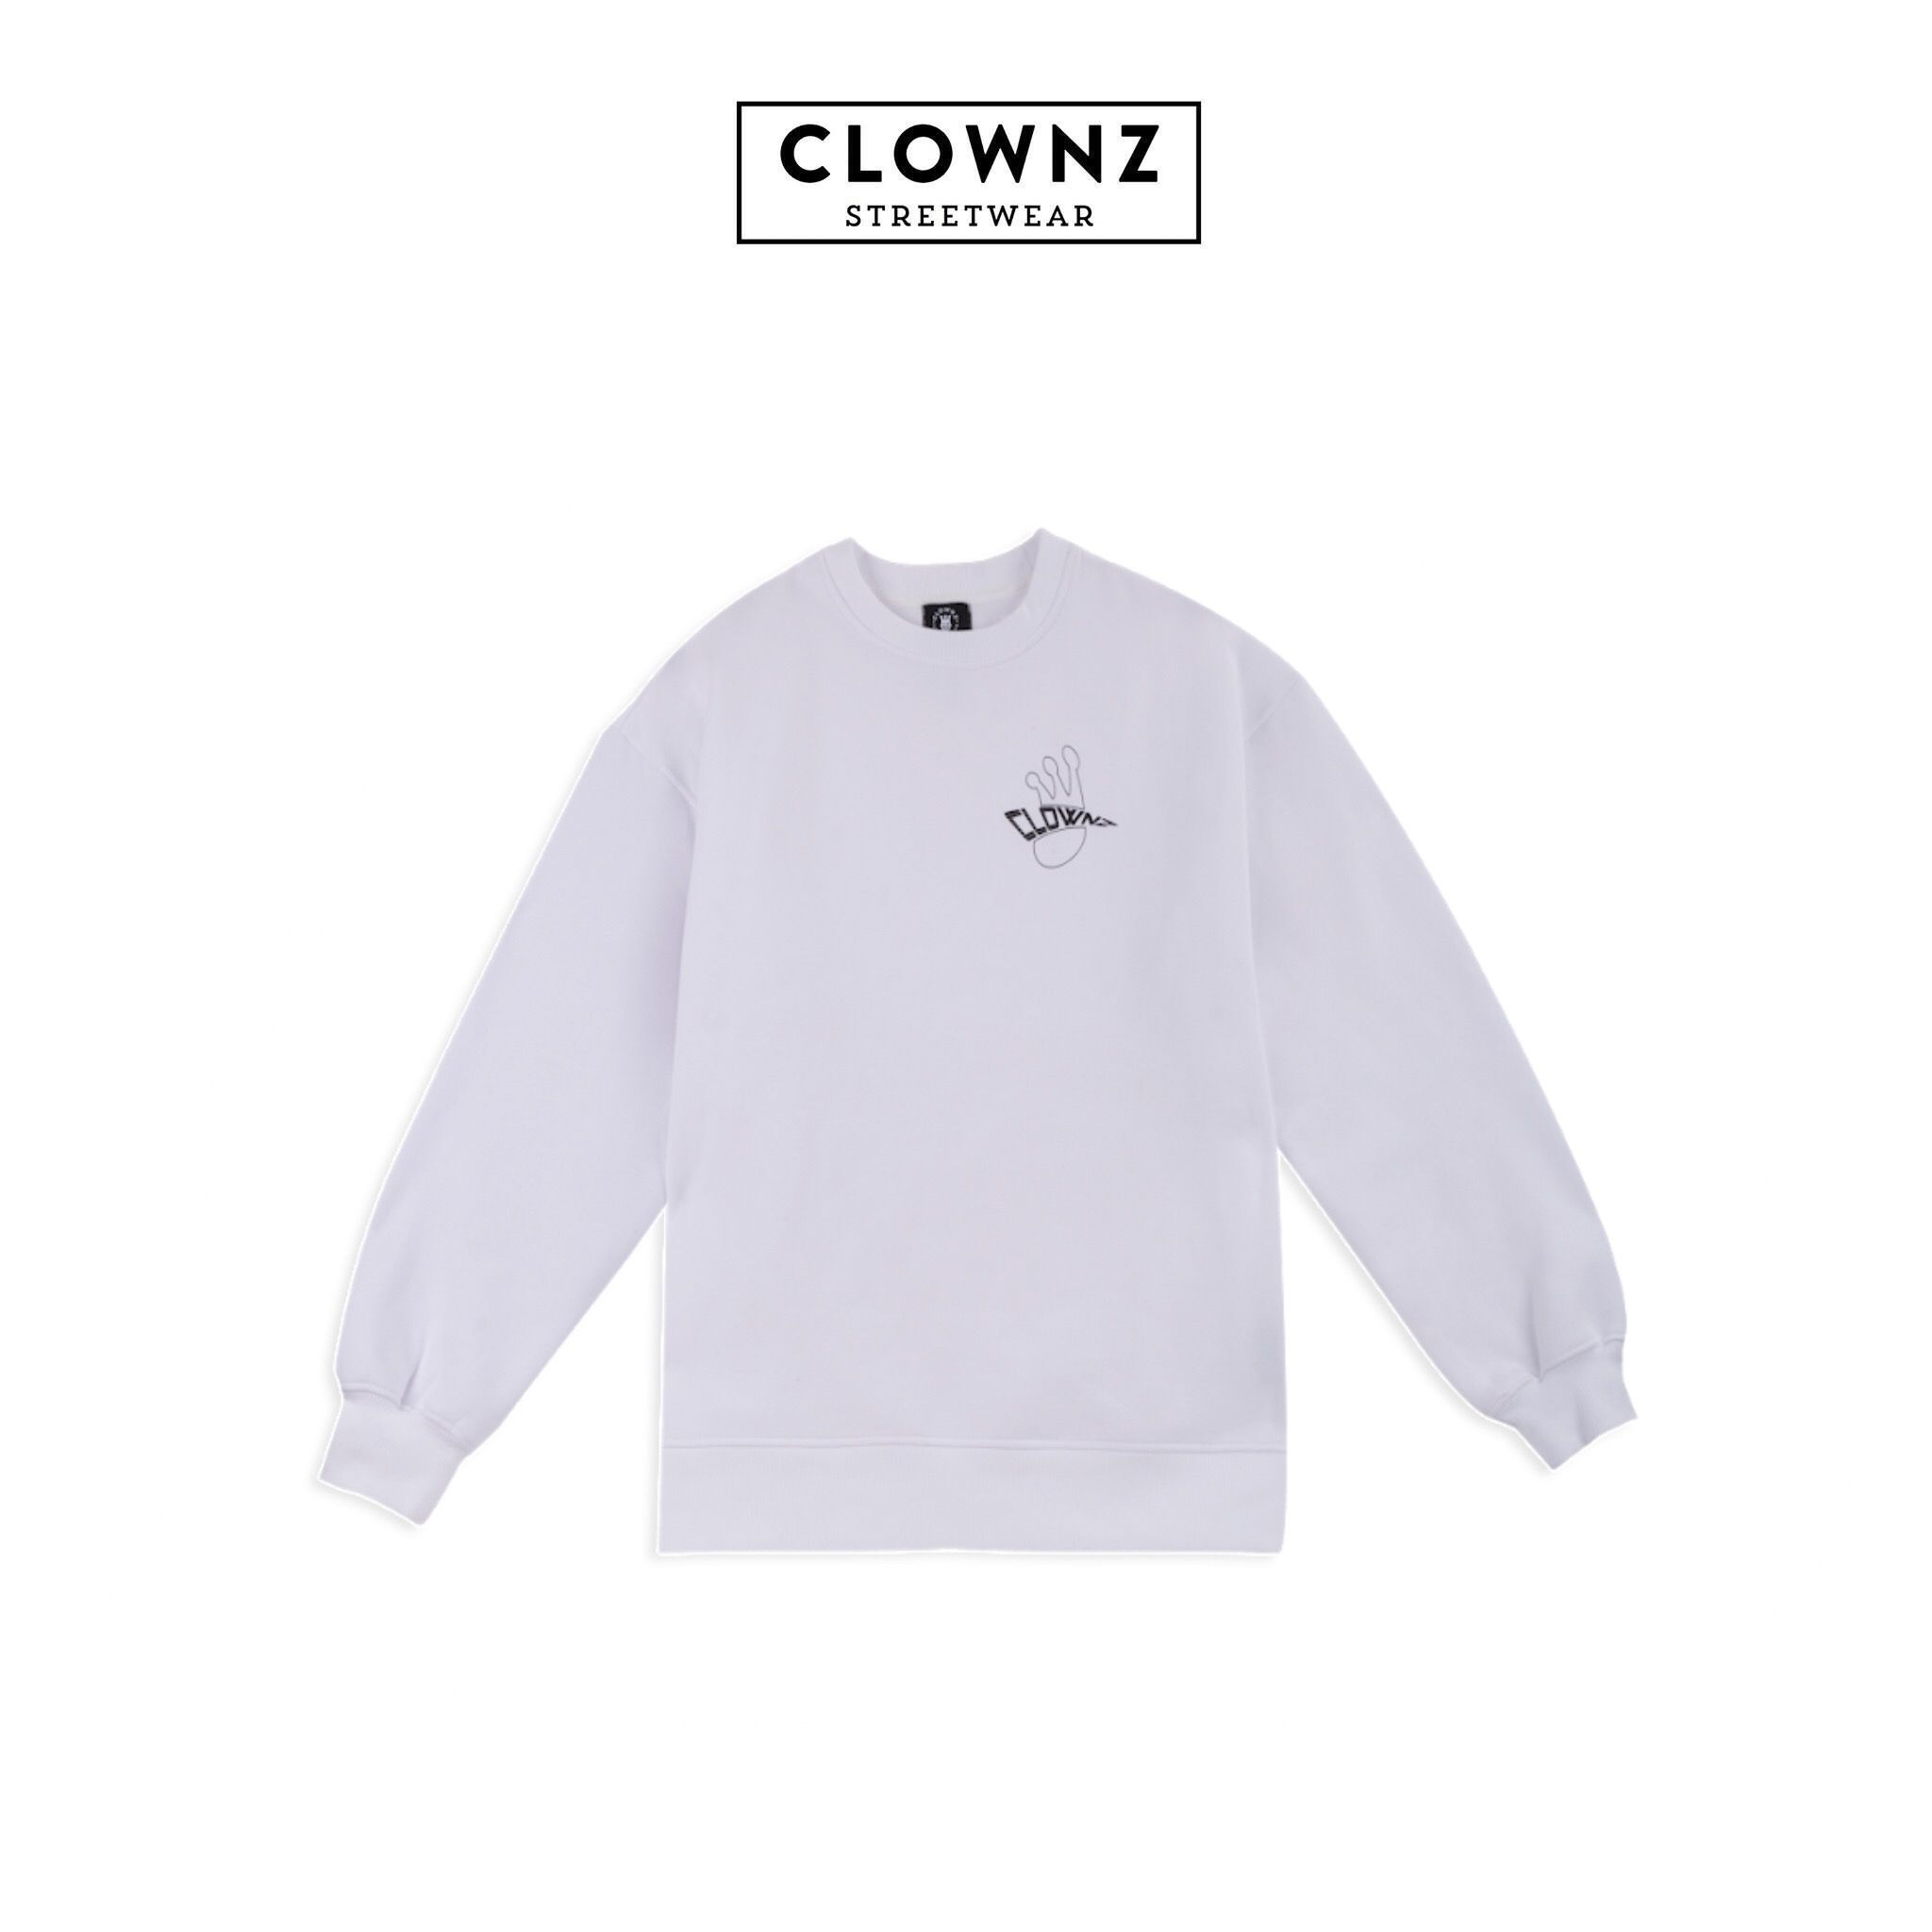 CLOWNZ Signature 2 Sweat Shirt F/W18 - White